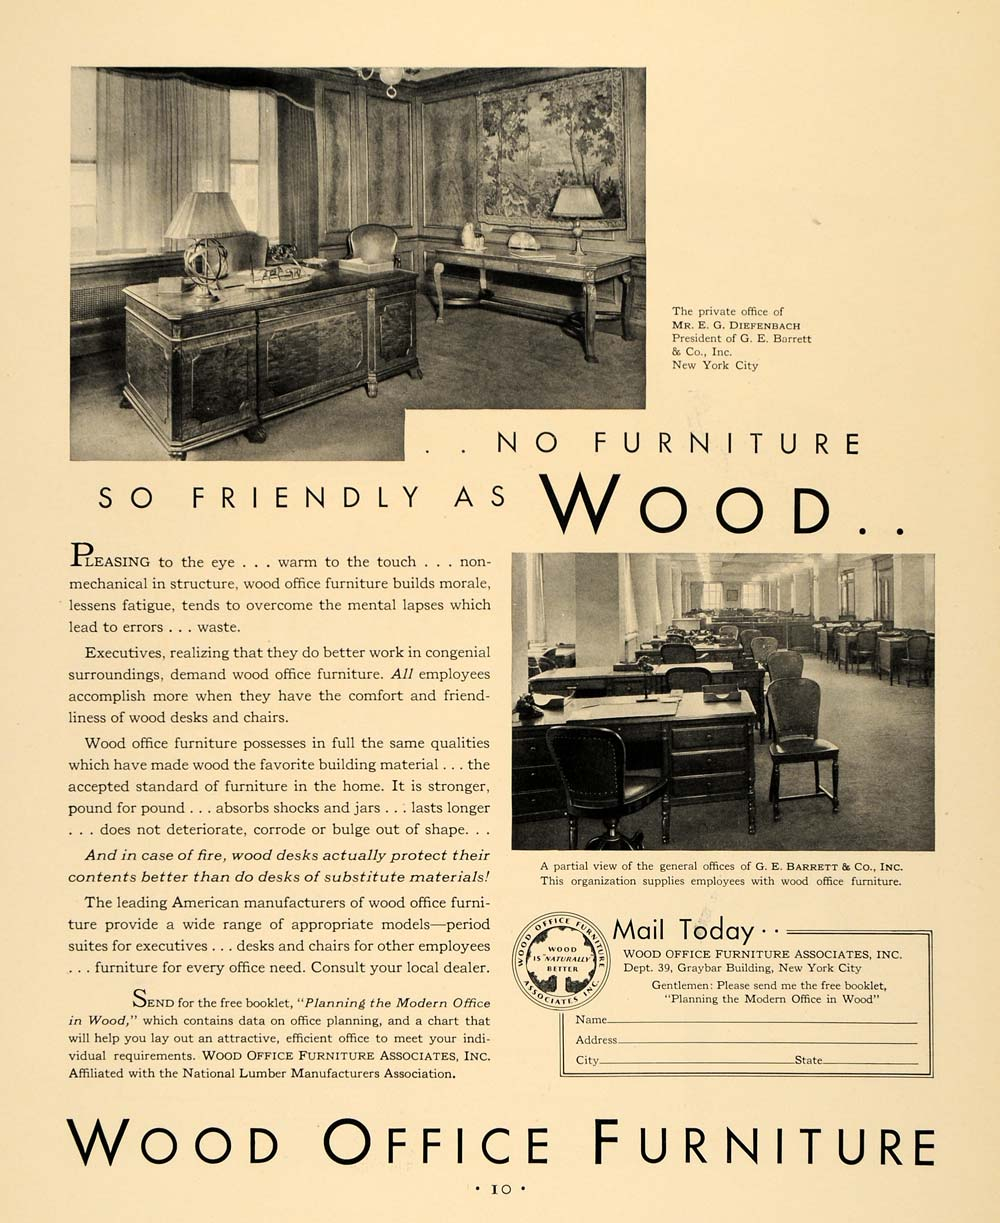 1930 Ad Wood Office Furniture G E Barrett New York - ORIGINAL ADVERTISING F3A